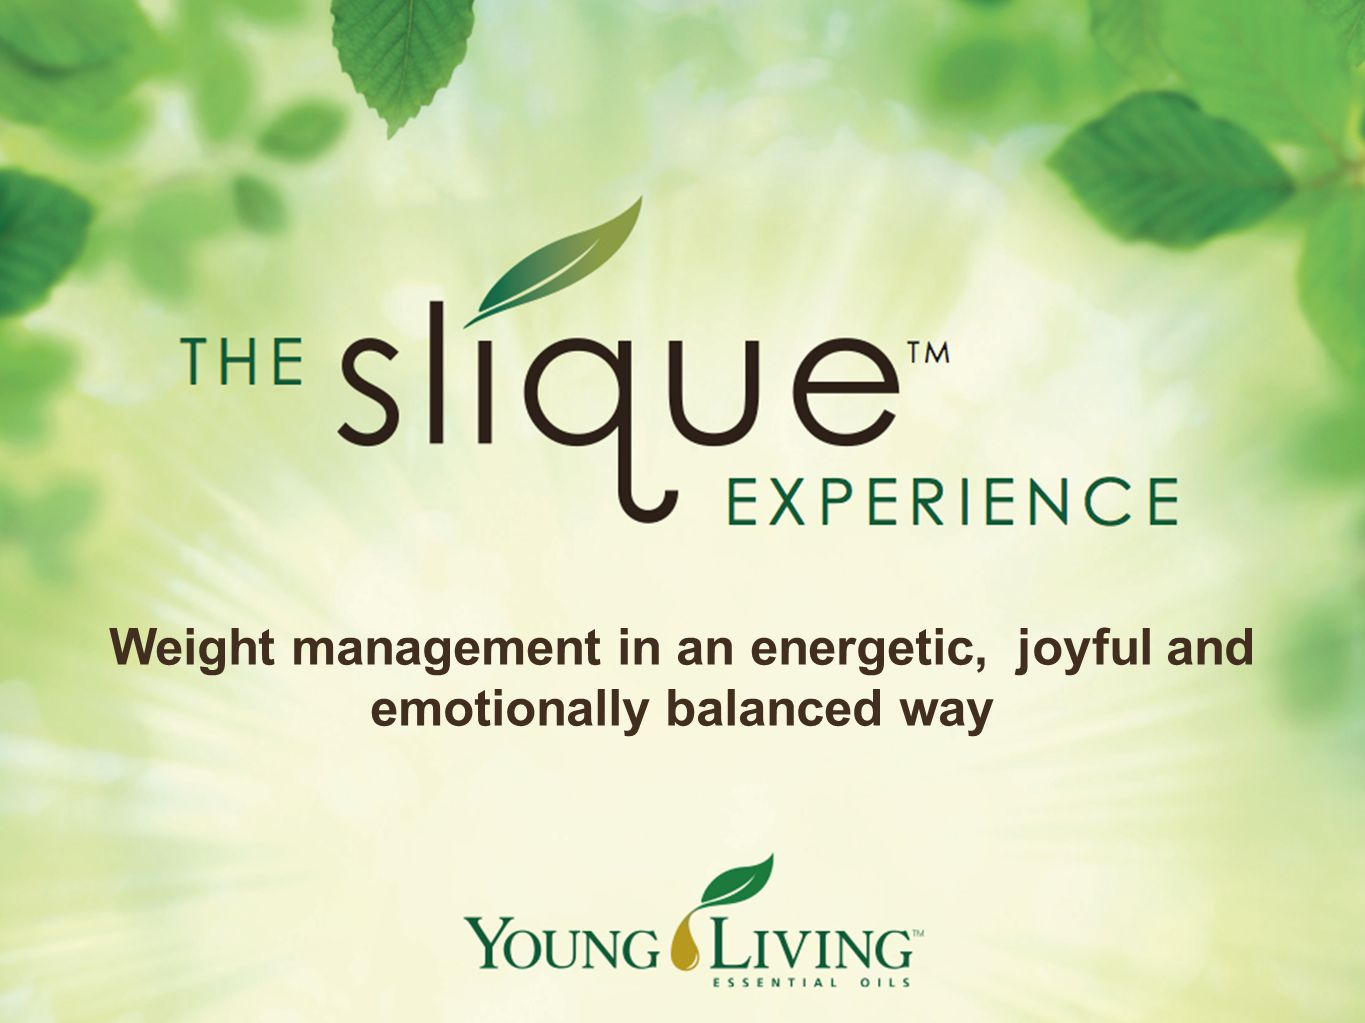 Weight management in an energetic, joyful and emotionally balanced way